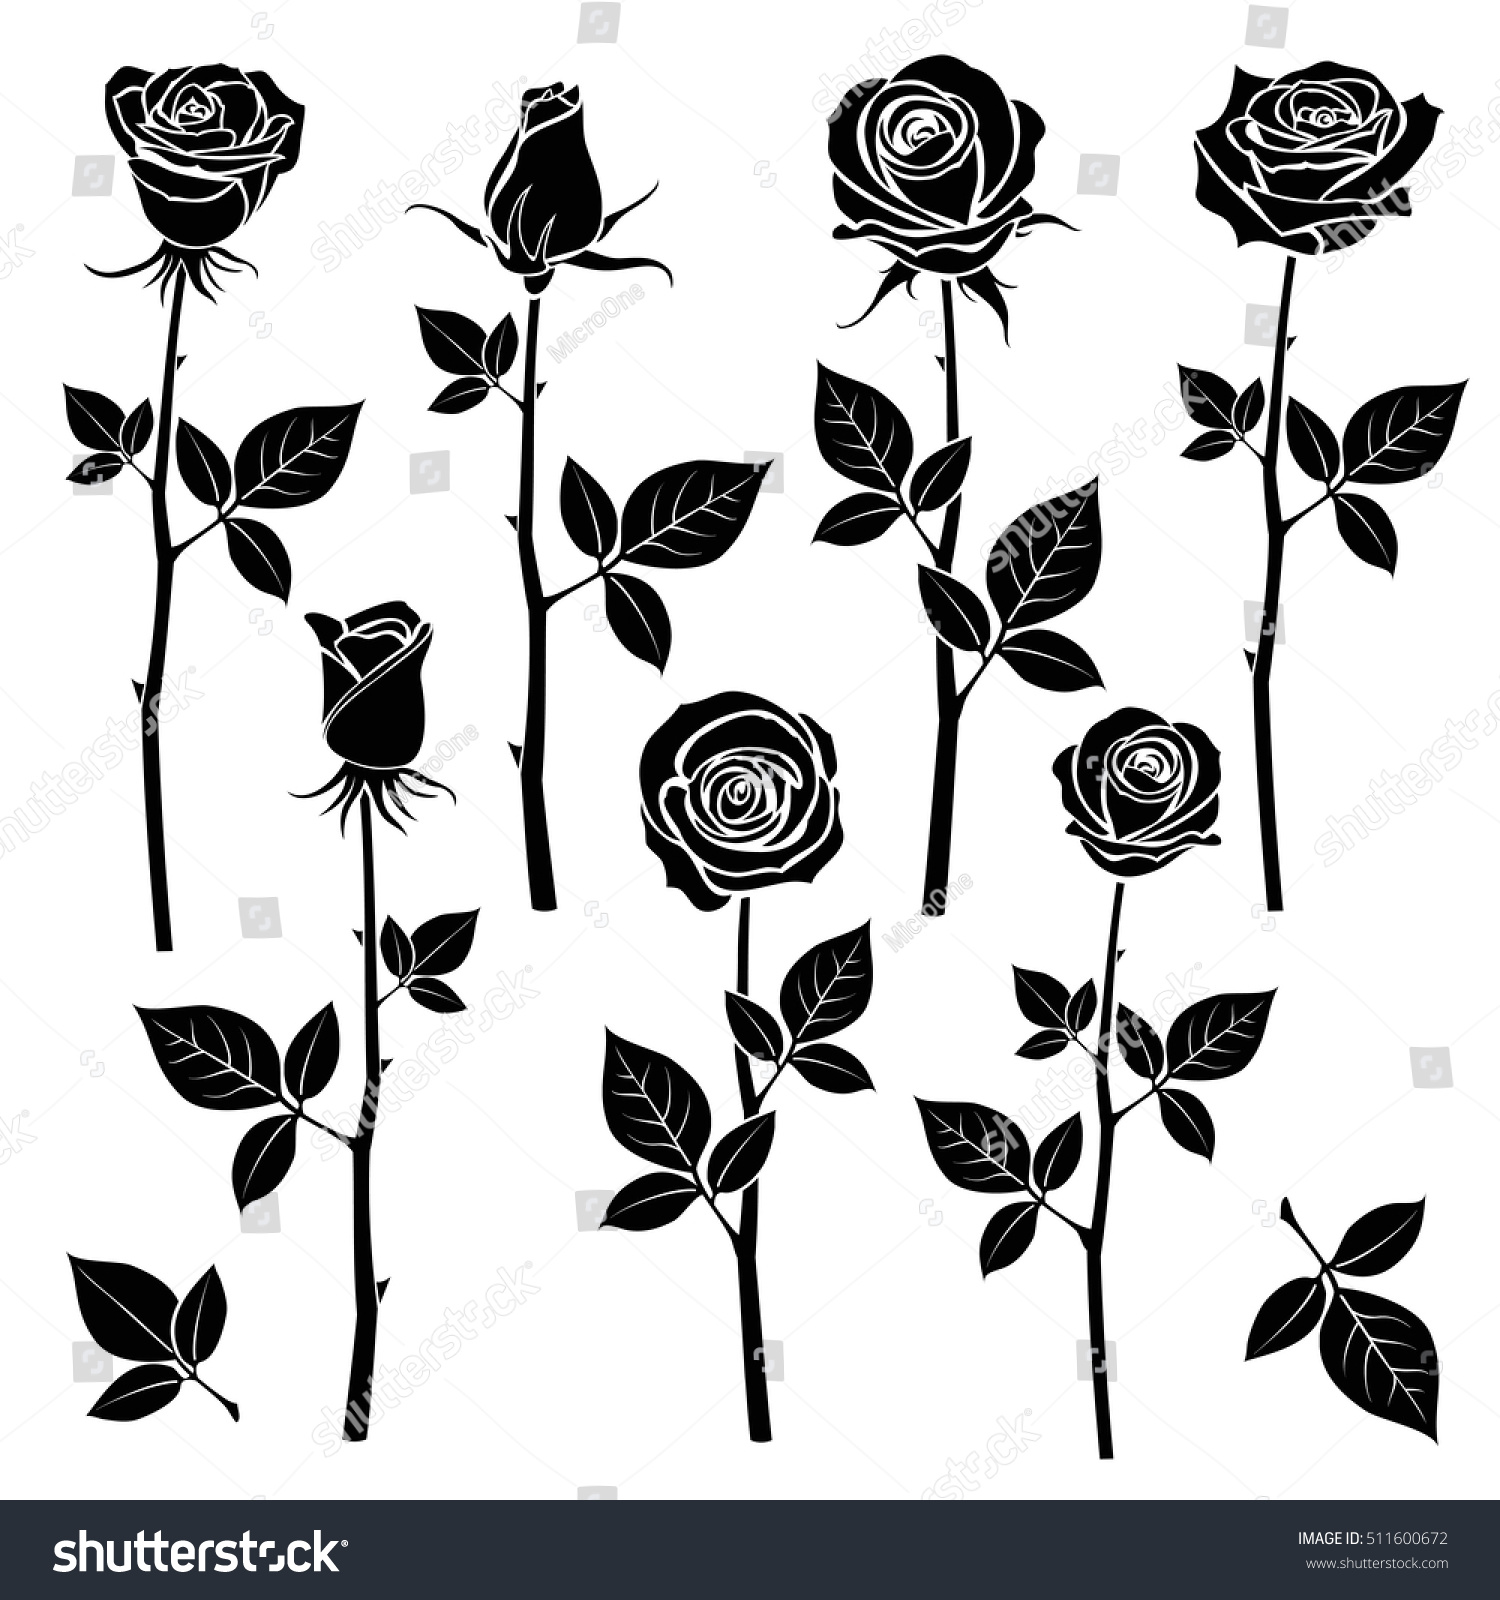 rose silhouettes spring buds vector symbols stock vector 511600672 shutterstock. Black Bedroom Furniture Sets. Home Design Ideas